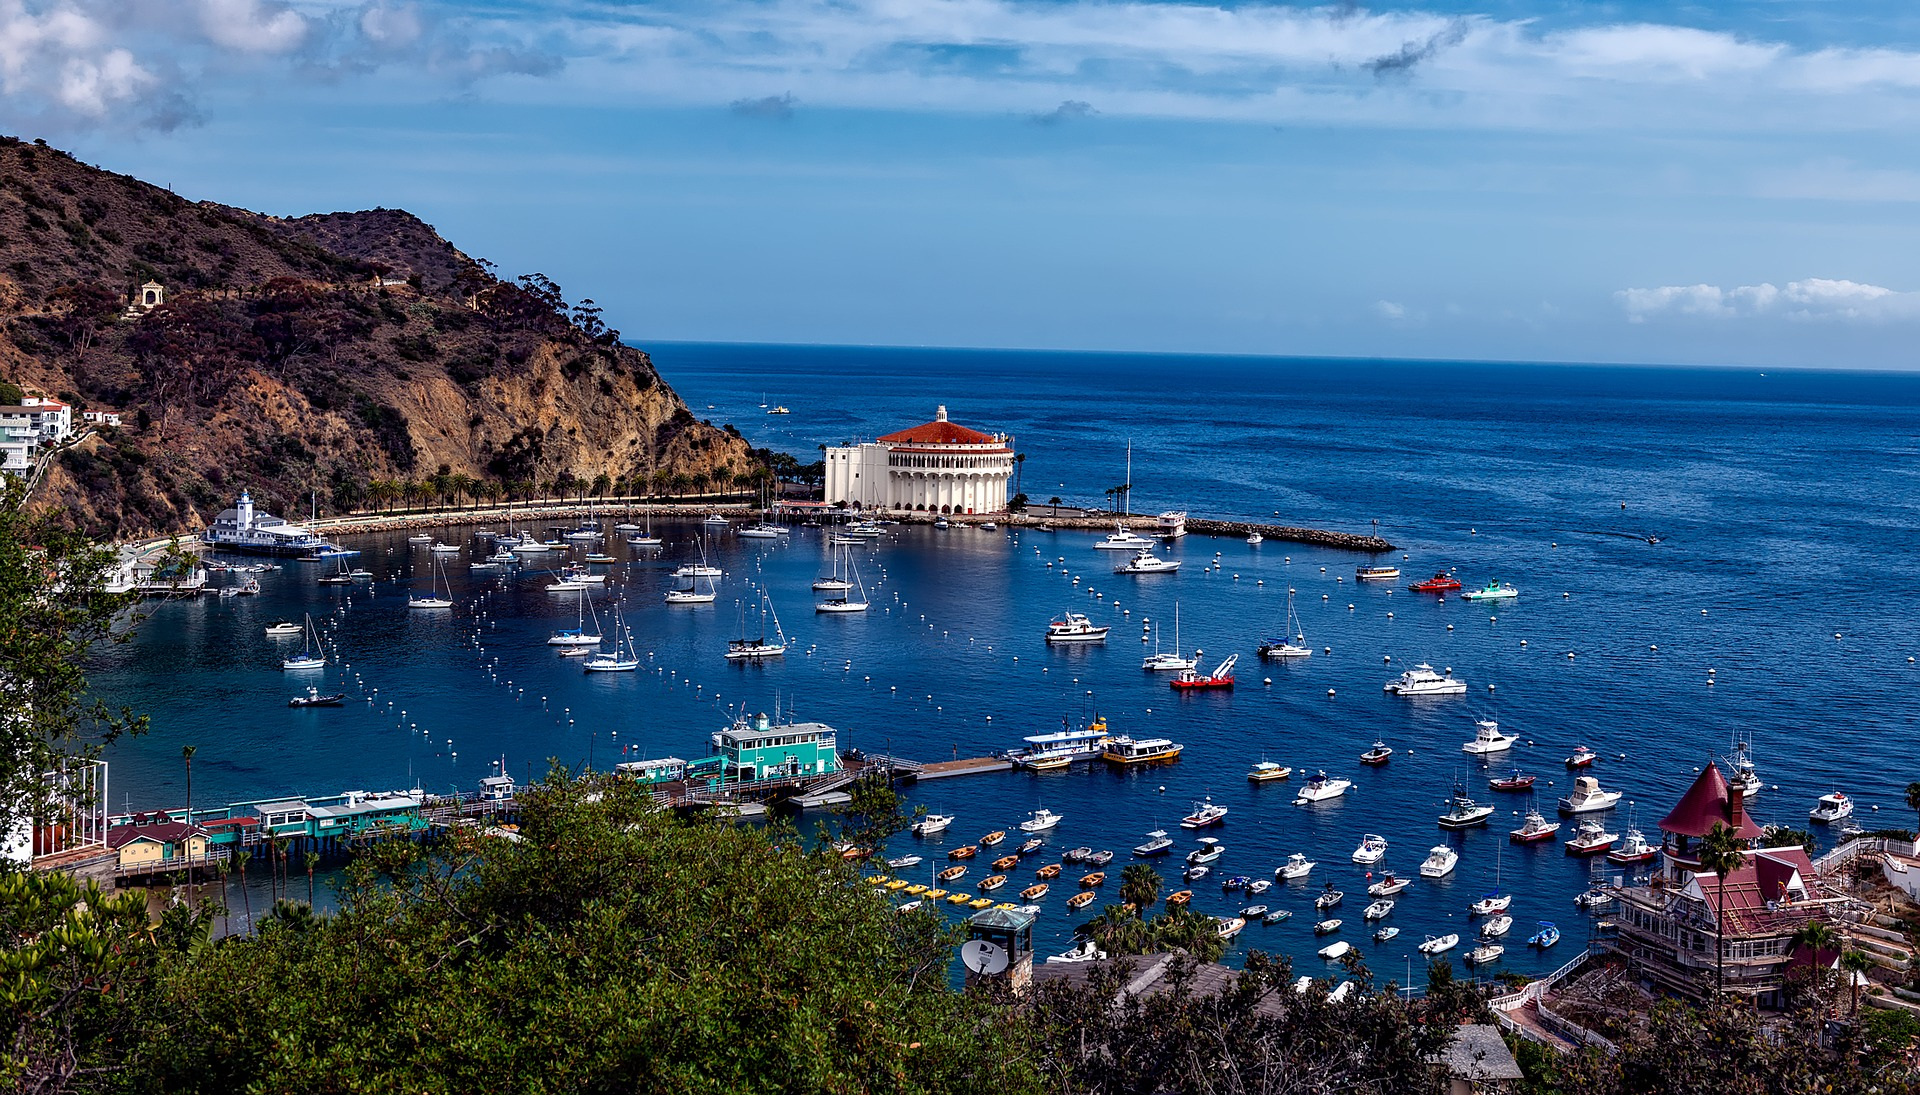 Catalina Island - Does weather affect fixed wireless? GeoLInks.com